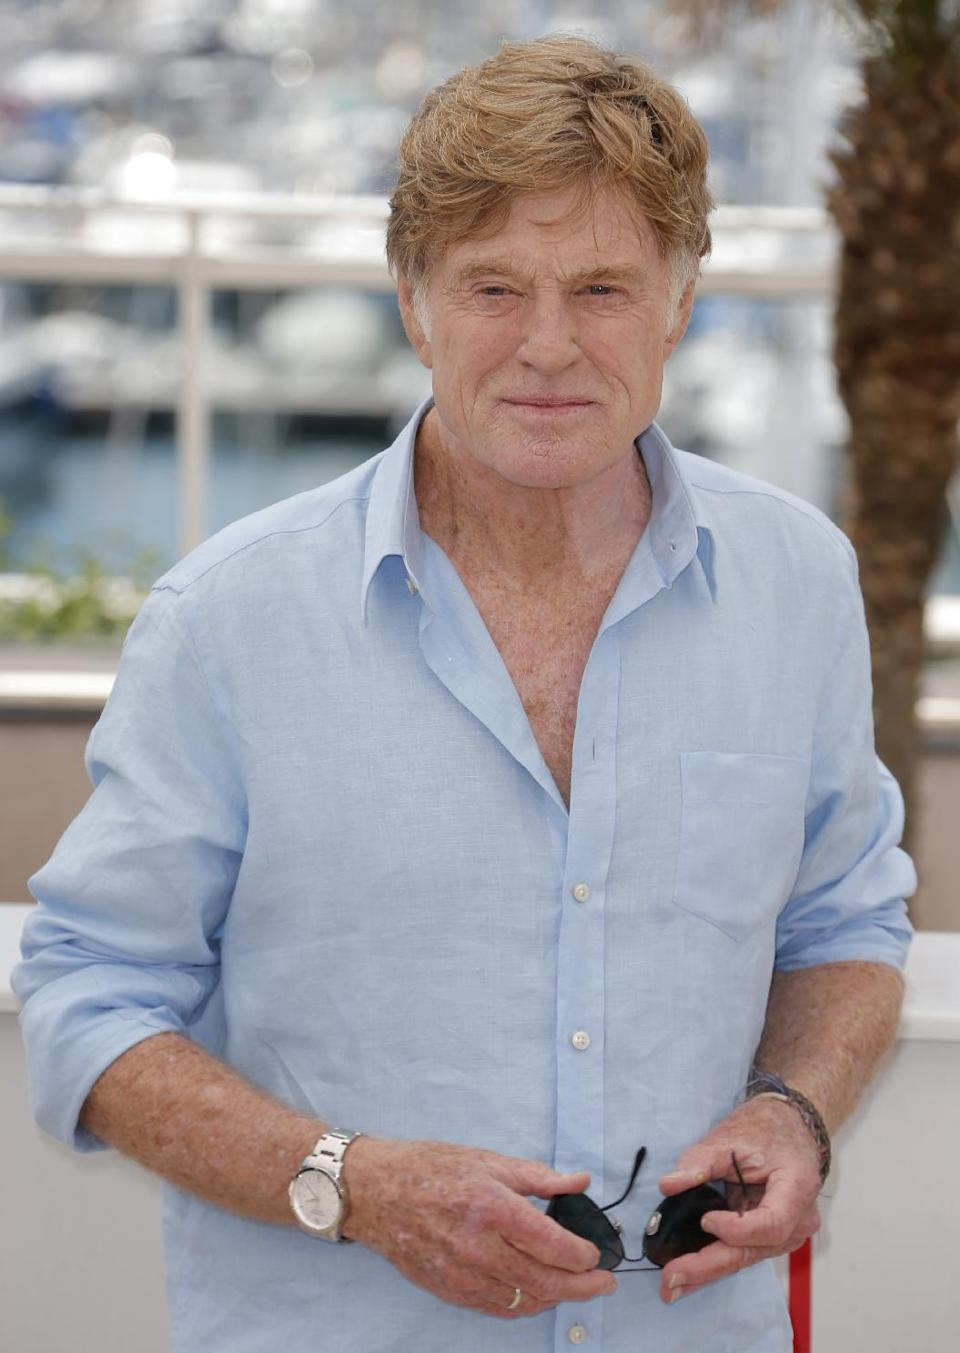 Actor Robert Redford poses for photographers during a photo call for the film All Is Lost at the 66th international film festival, in Cannes, southern France, Wednesday, May 22, 2013. (Photo by Todd Williamson/Invision/AP)